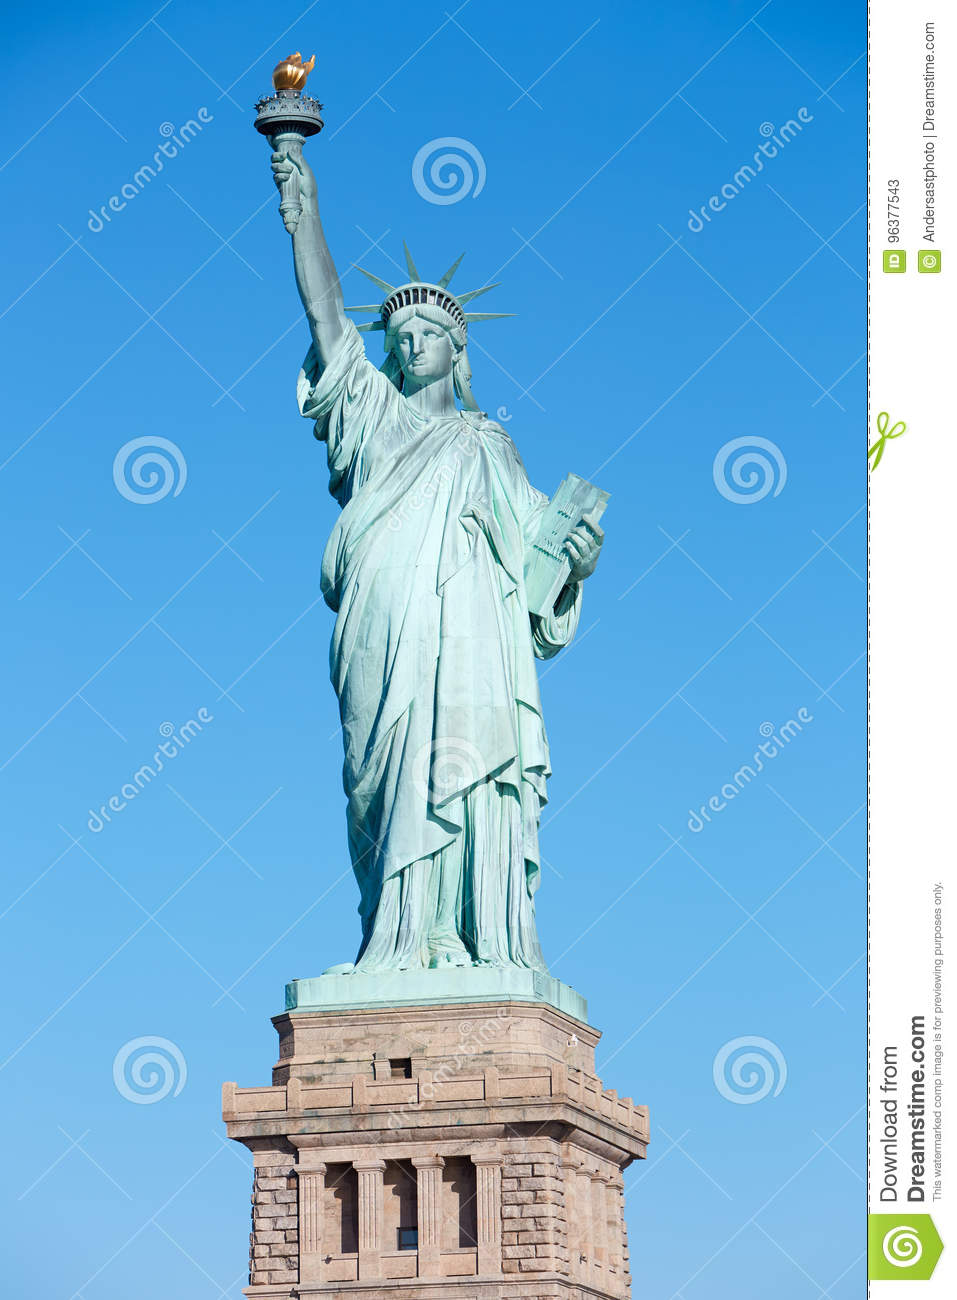 several enjoy globetrotting tips the top foodstatue visiting of there mommy for pedestal tickets to are statue spots liberty